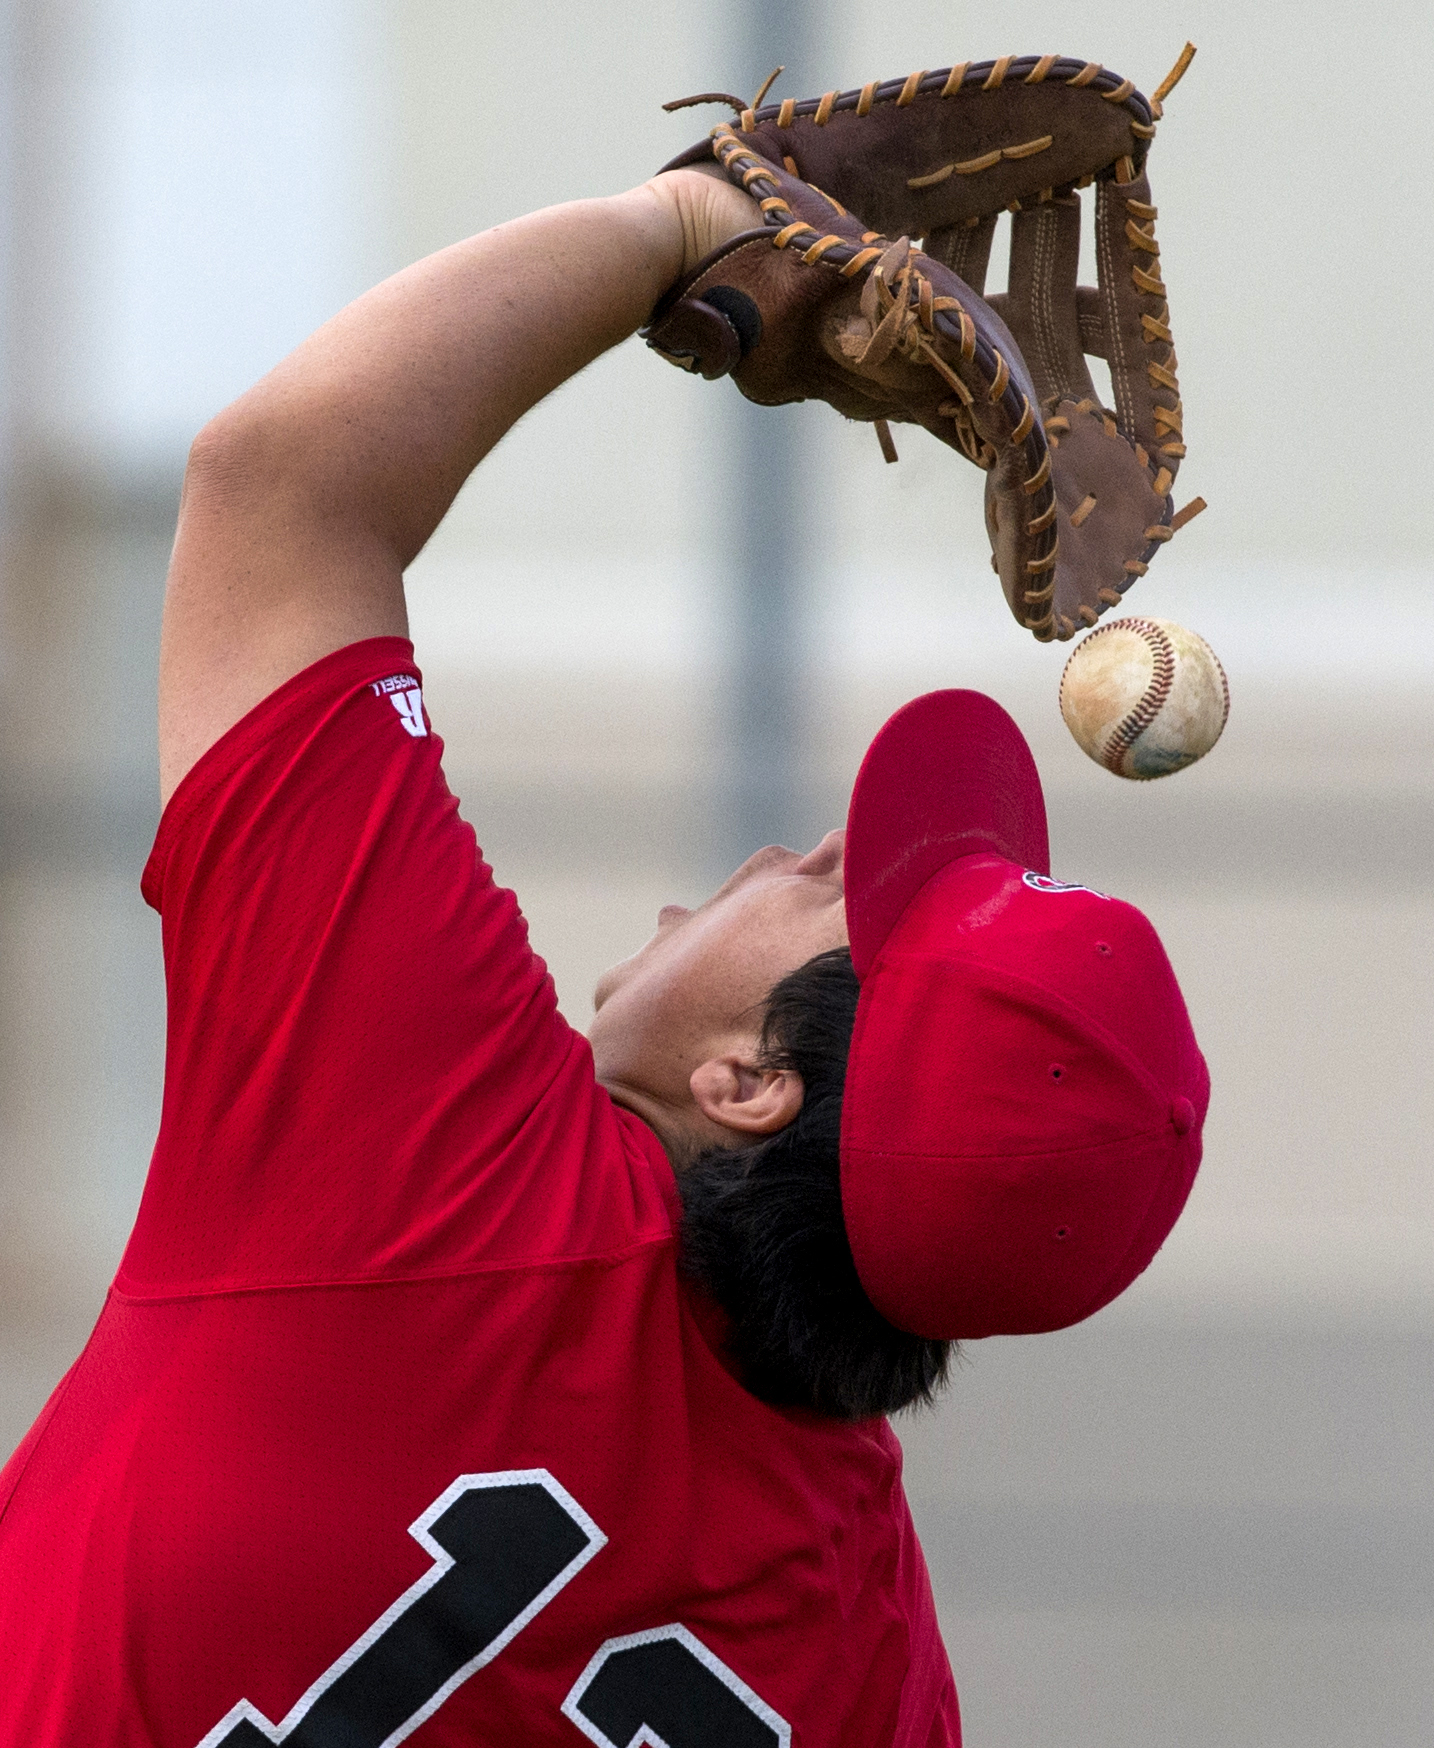 Harbor Teacher Prep's Jeff Slater(13) can�t hang on to the ball after a pop-up against Rancho Dominguez as the teams battle for the L.A. City Section Div. III baseball semifinal in Long Beach, Tuesday, May 29, 2018.